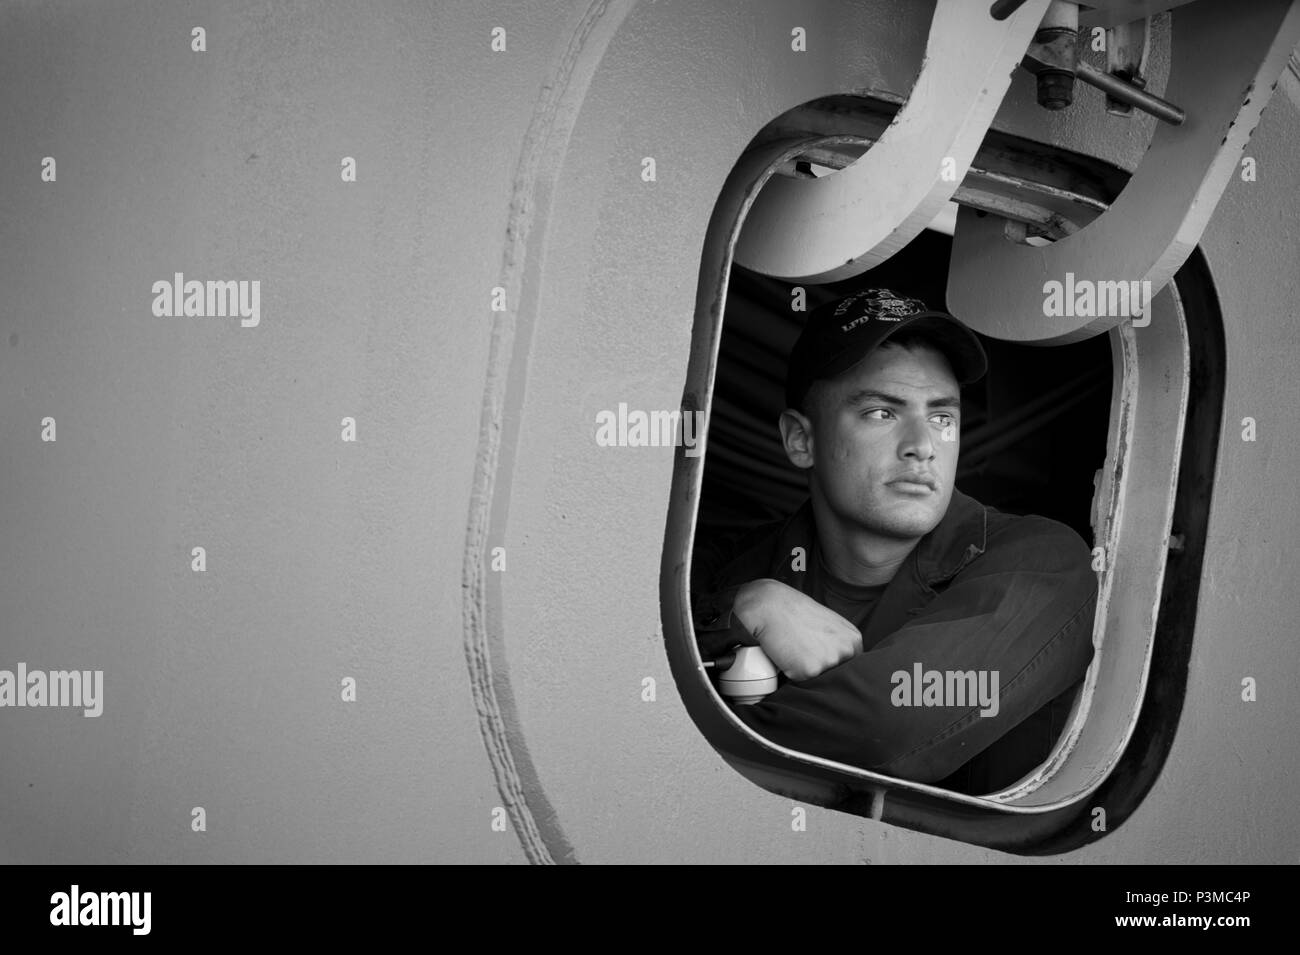 160711-N-KK330-376 JOINT BASE PEARL HARBOR-HICKAM (July 11, 2016) – Aviation Boatswain's Mate (Fuels) Airman Robert Getz, assigned to amphibious transport dock ship USS San Diego (LPD 22), looks out from his sea and anchor watch station prior to the ship departing Joint Base Pearl Harbor-Hickam during Rim of the Pacific 2016. Twenty-six nations, more than 40 ships and submarines, more than 200 aircraft, and 25,000 personnel are participating in RIMPAC from June 30 to Aug. 4, in and around the Hawaiian Islands and Southern California. The world's largest international maritime exercise, RIMPAC  - Stock Image